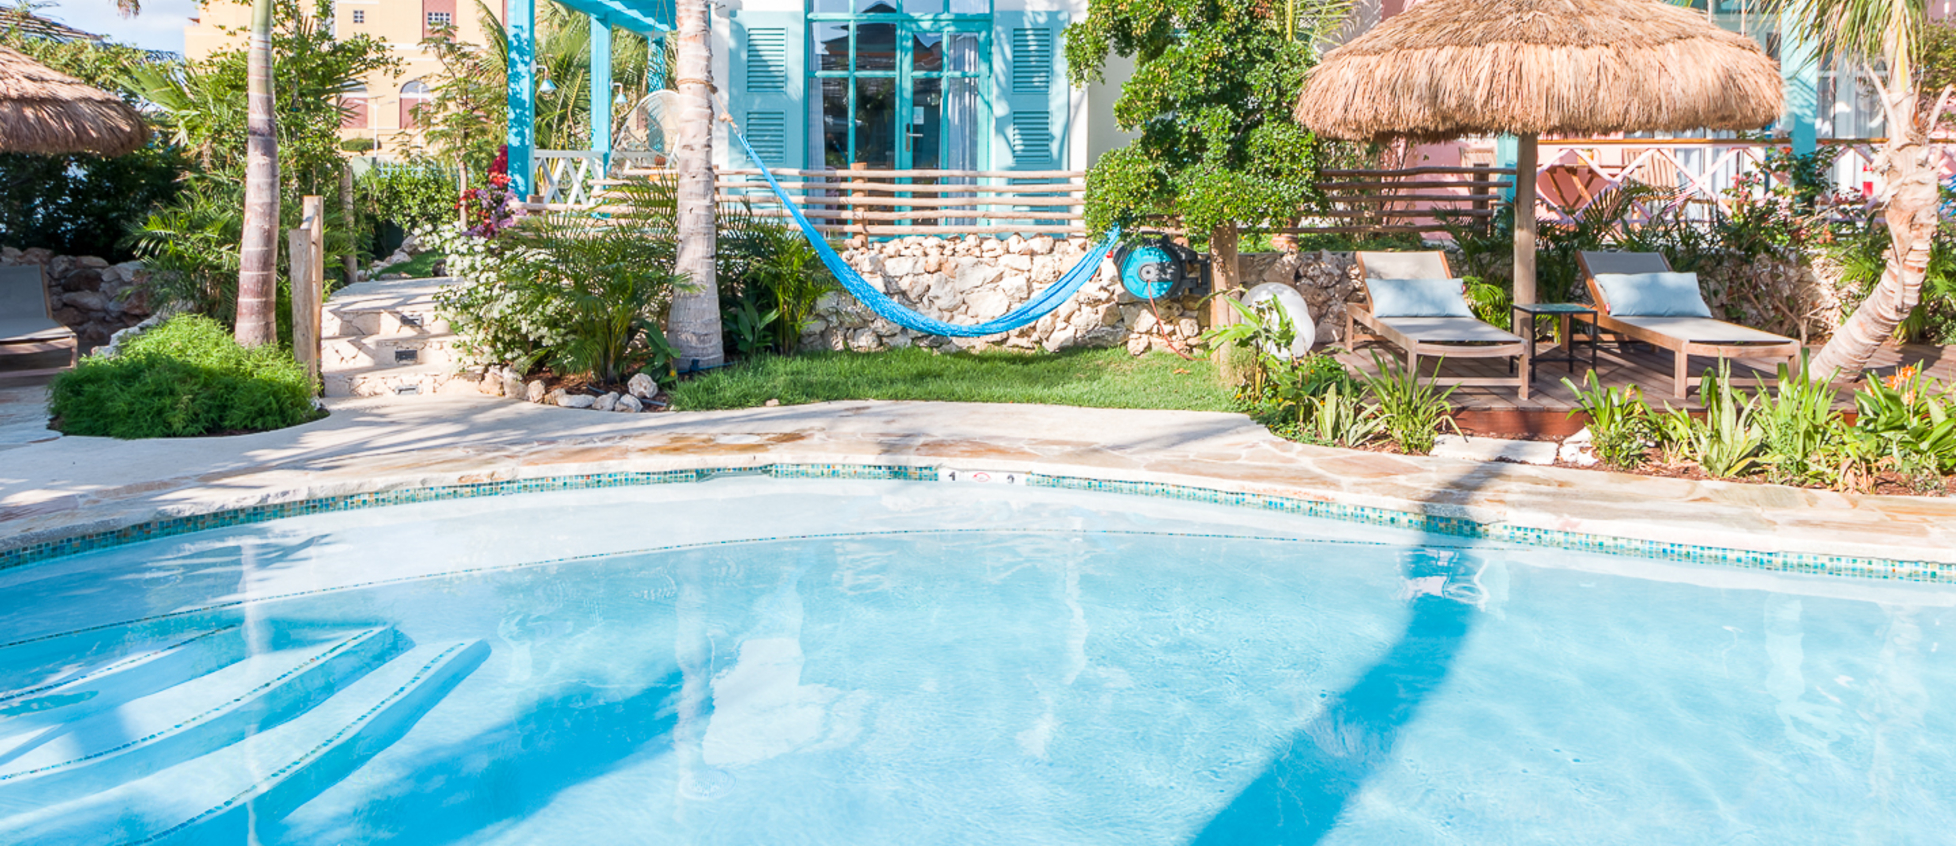 One bedroom casita with pool view